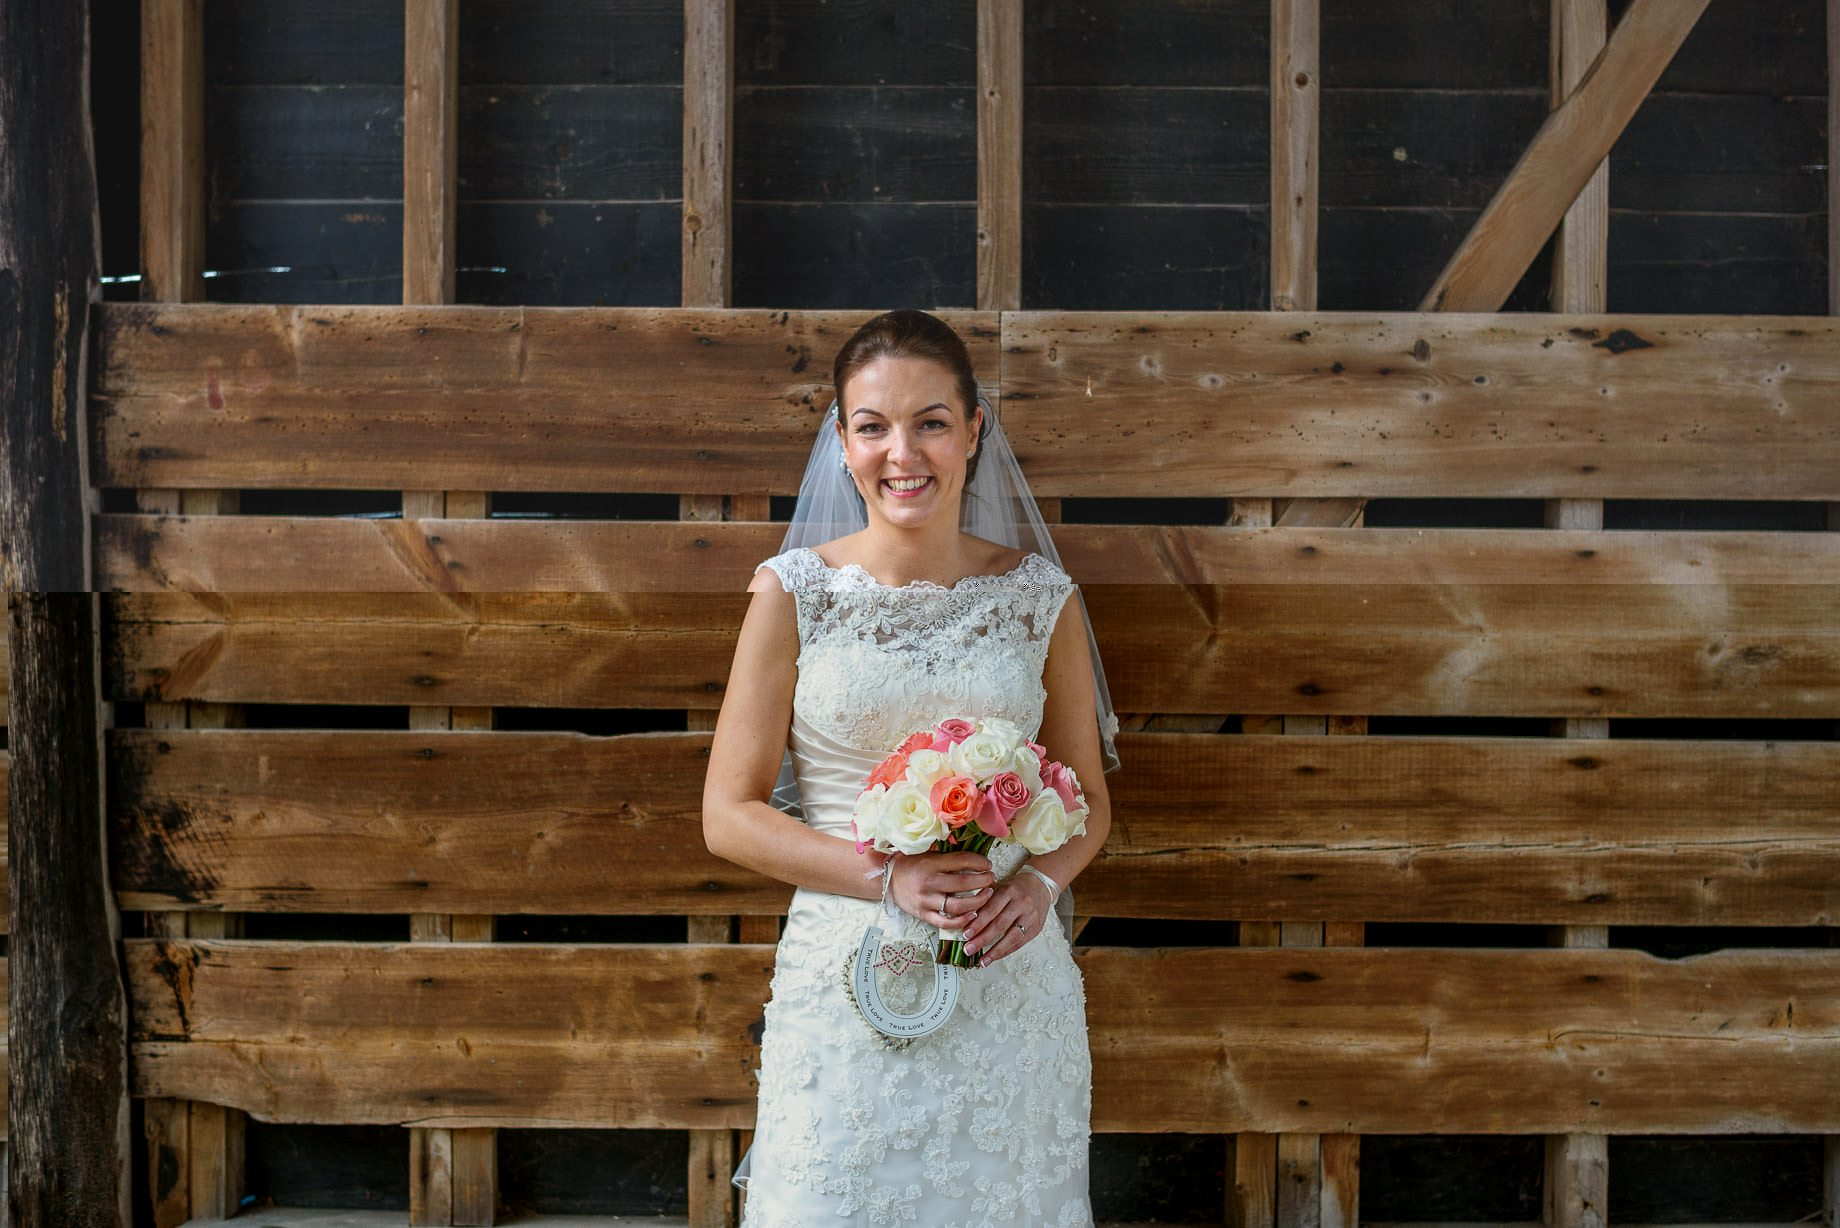 Best wedding photography by Guy Collier - Sheri and Chris (74 of 121)